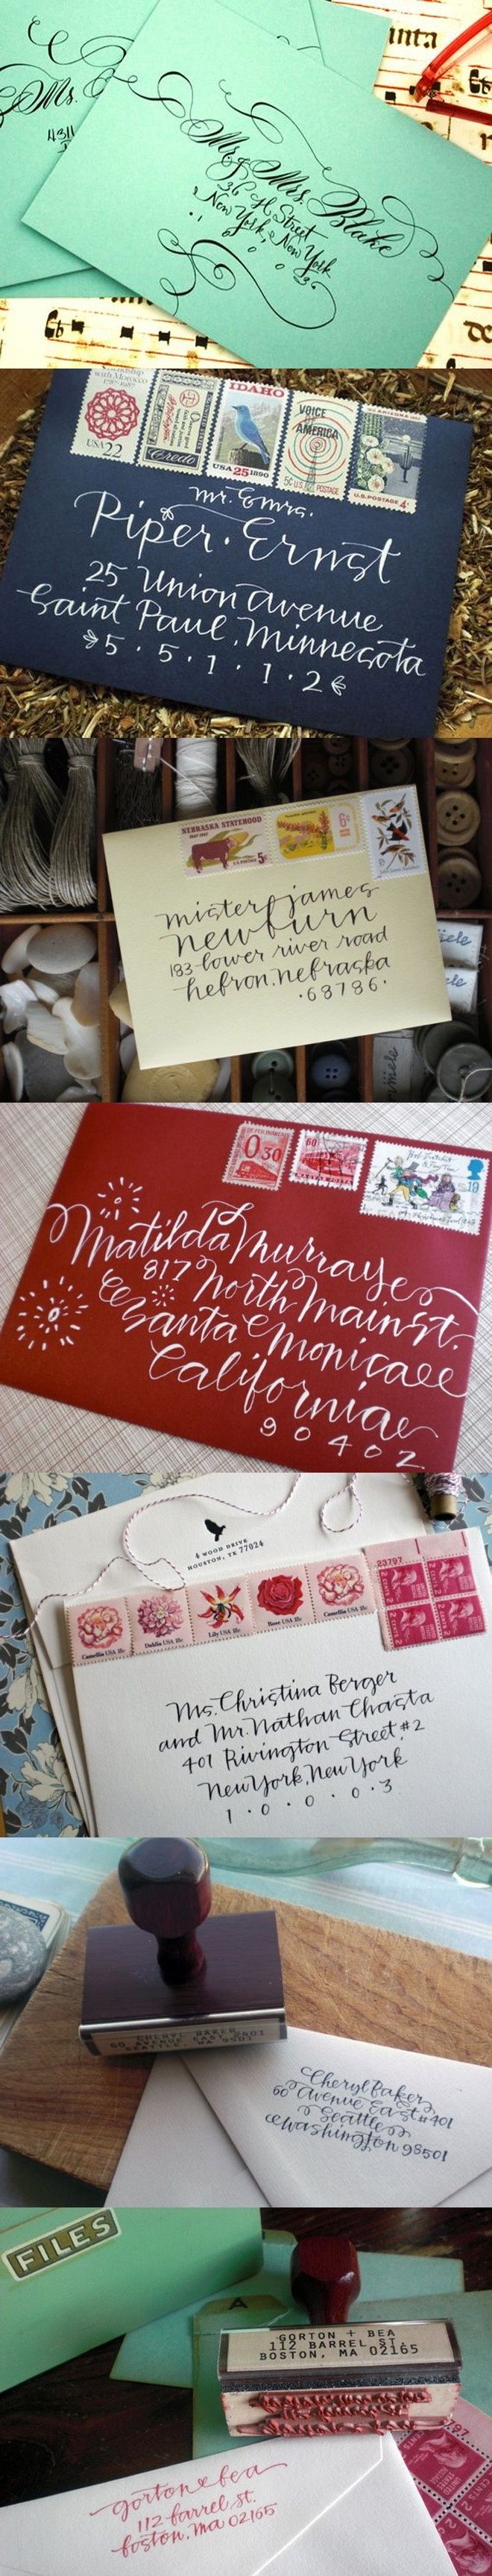 79 best Calligraphy Inspiration images on Pinterest   Calligraphy ...